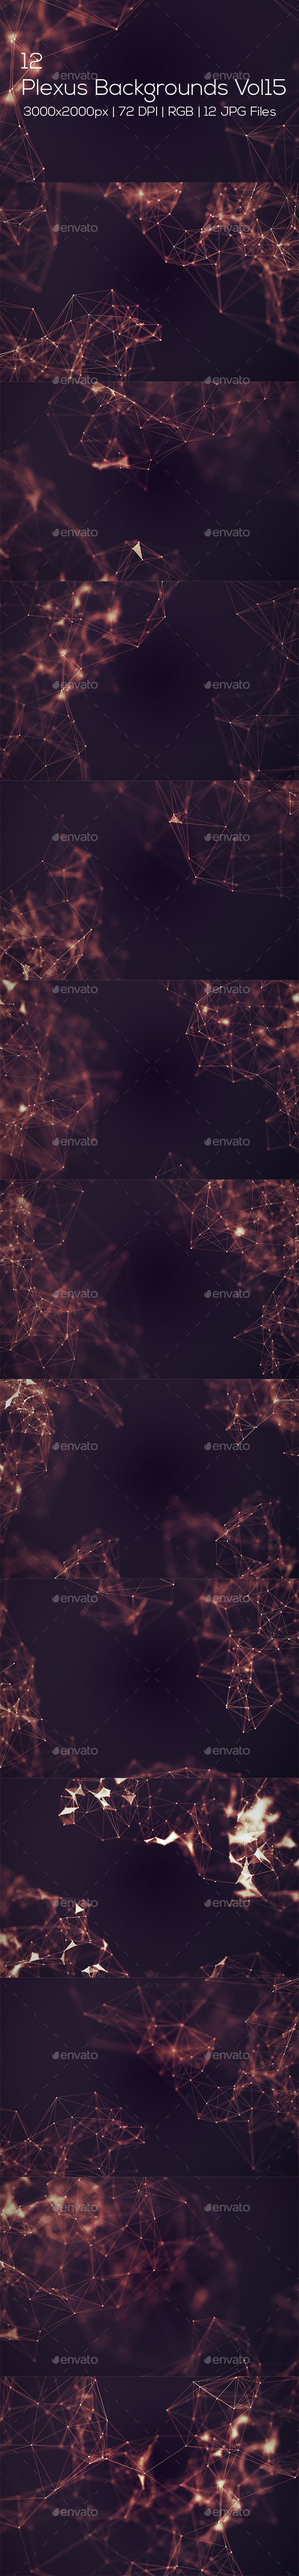 Plexus Backgrounds Vol15 - Abstract Backgrounds